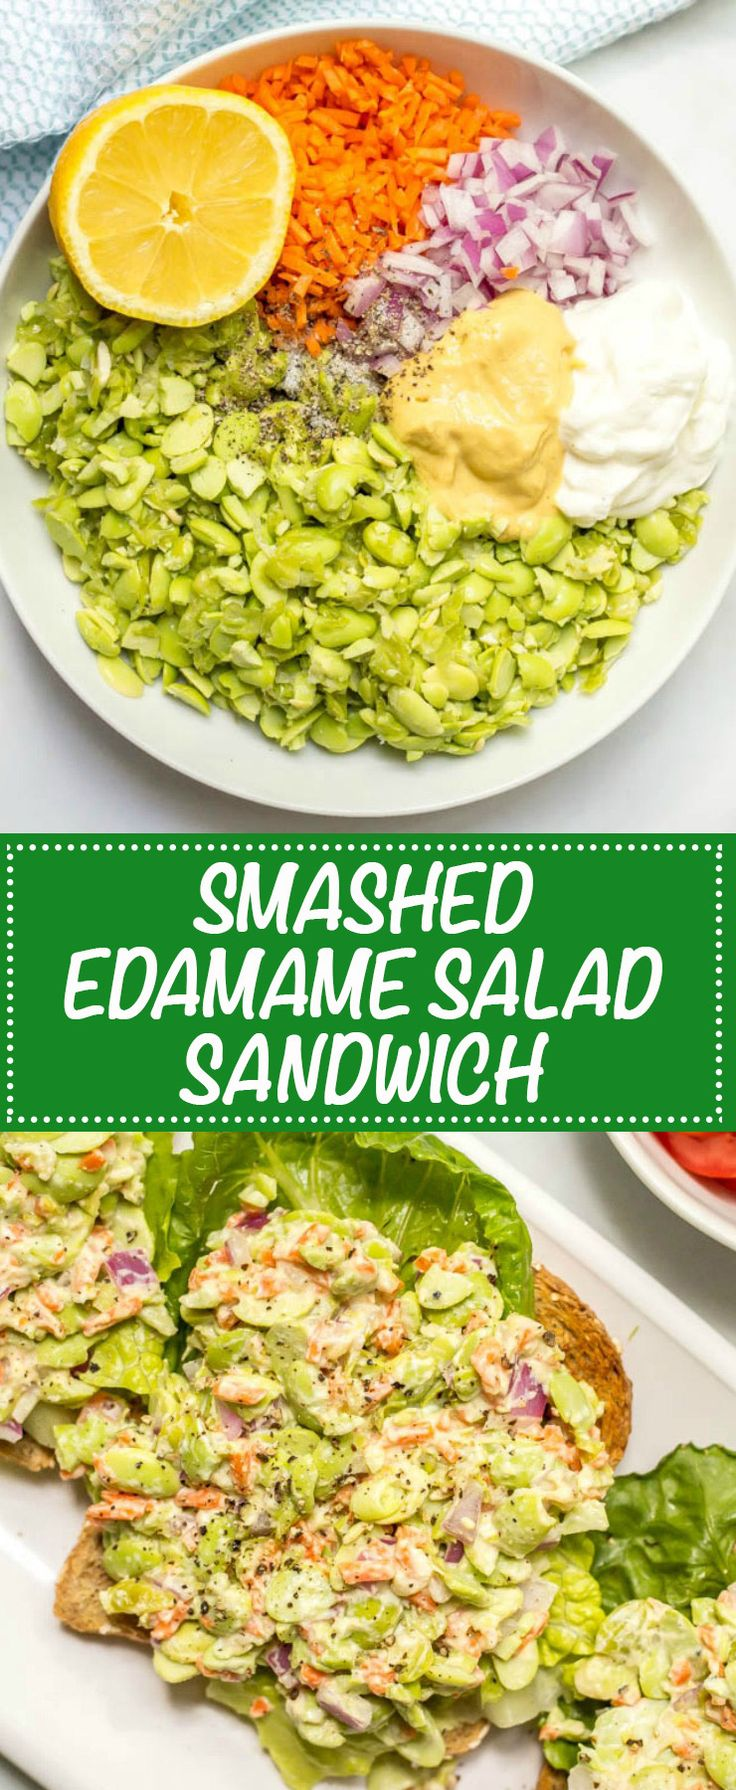 Smashed edamame salad is like the chickpea version but even lighter - perfect on its own or in a sandwich or wrap for a healthy lunch! | www.familyfoodonthetable.com